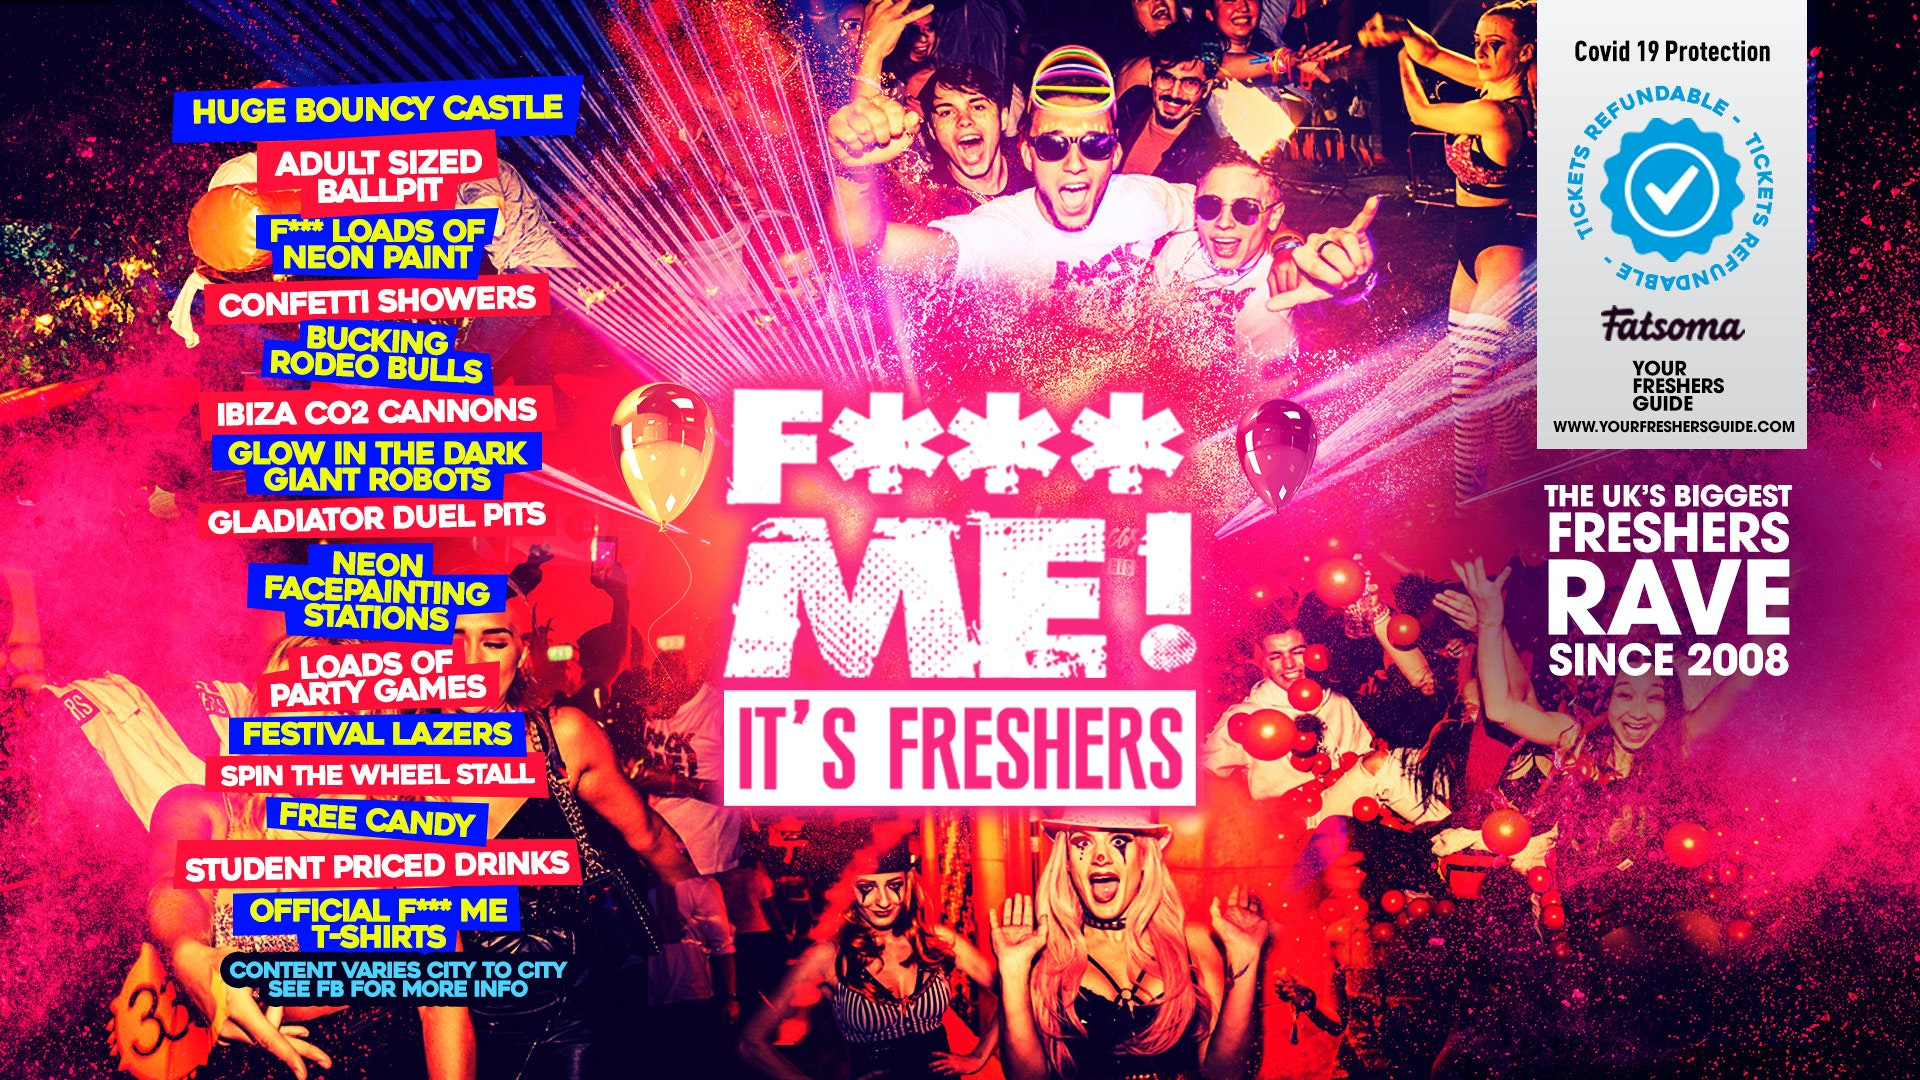 FME It's Freshers // Derby Freshers 2020